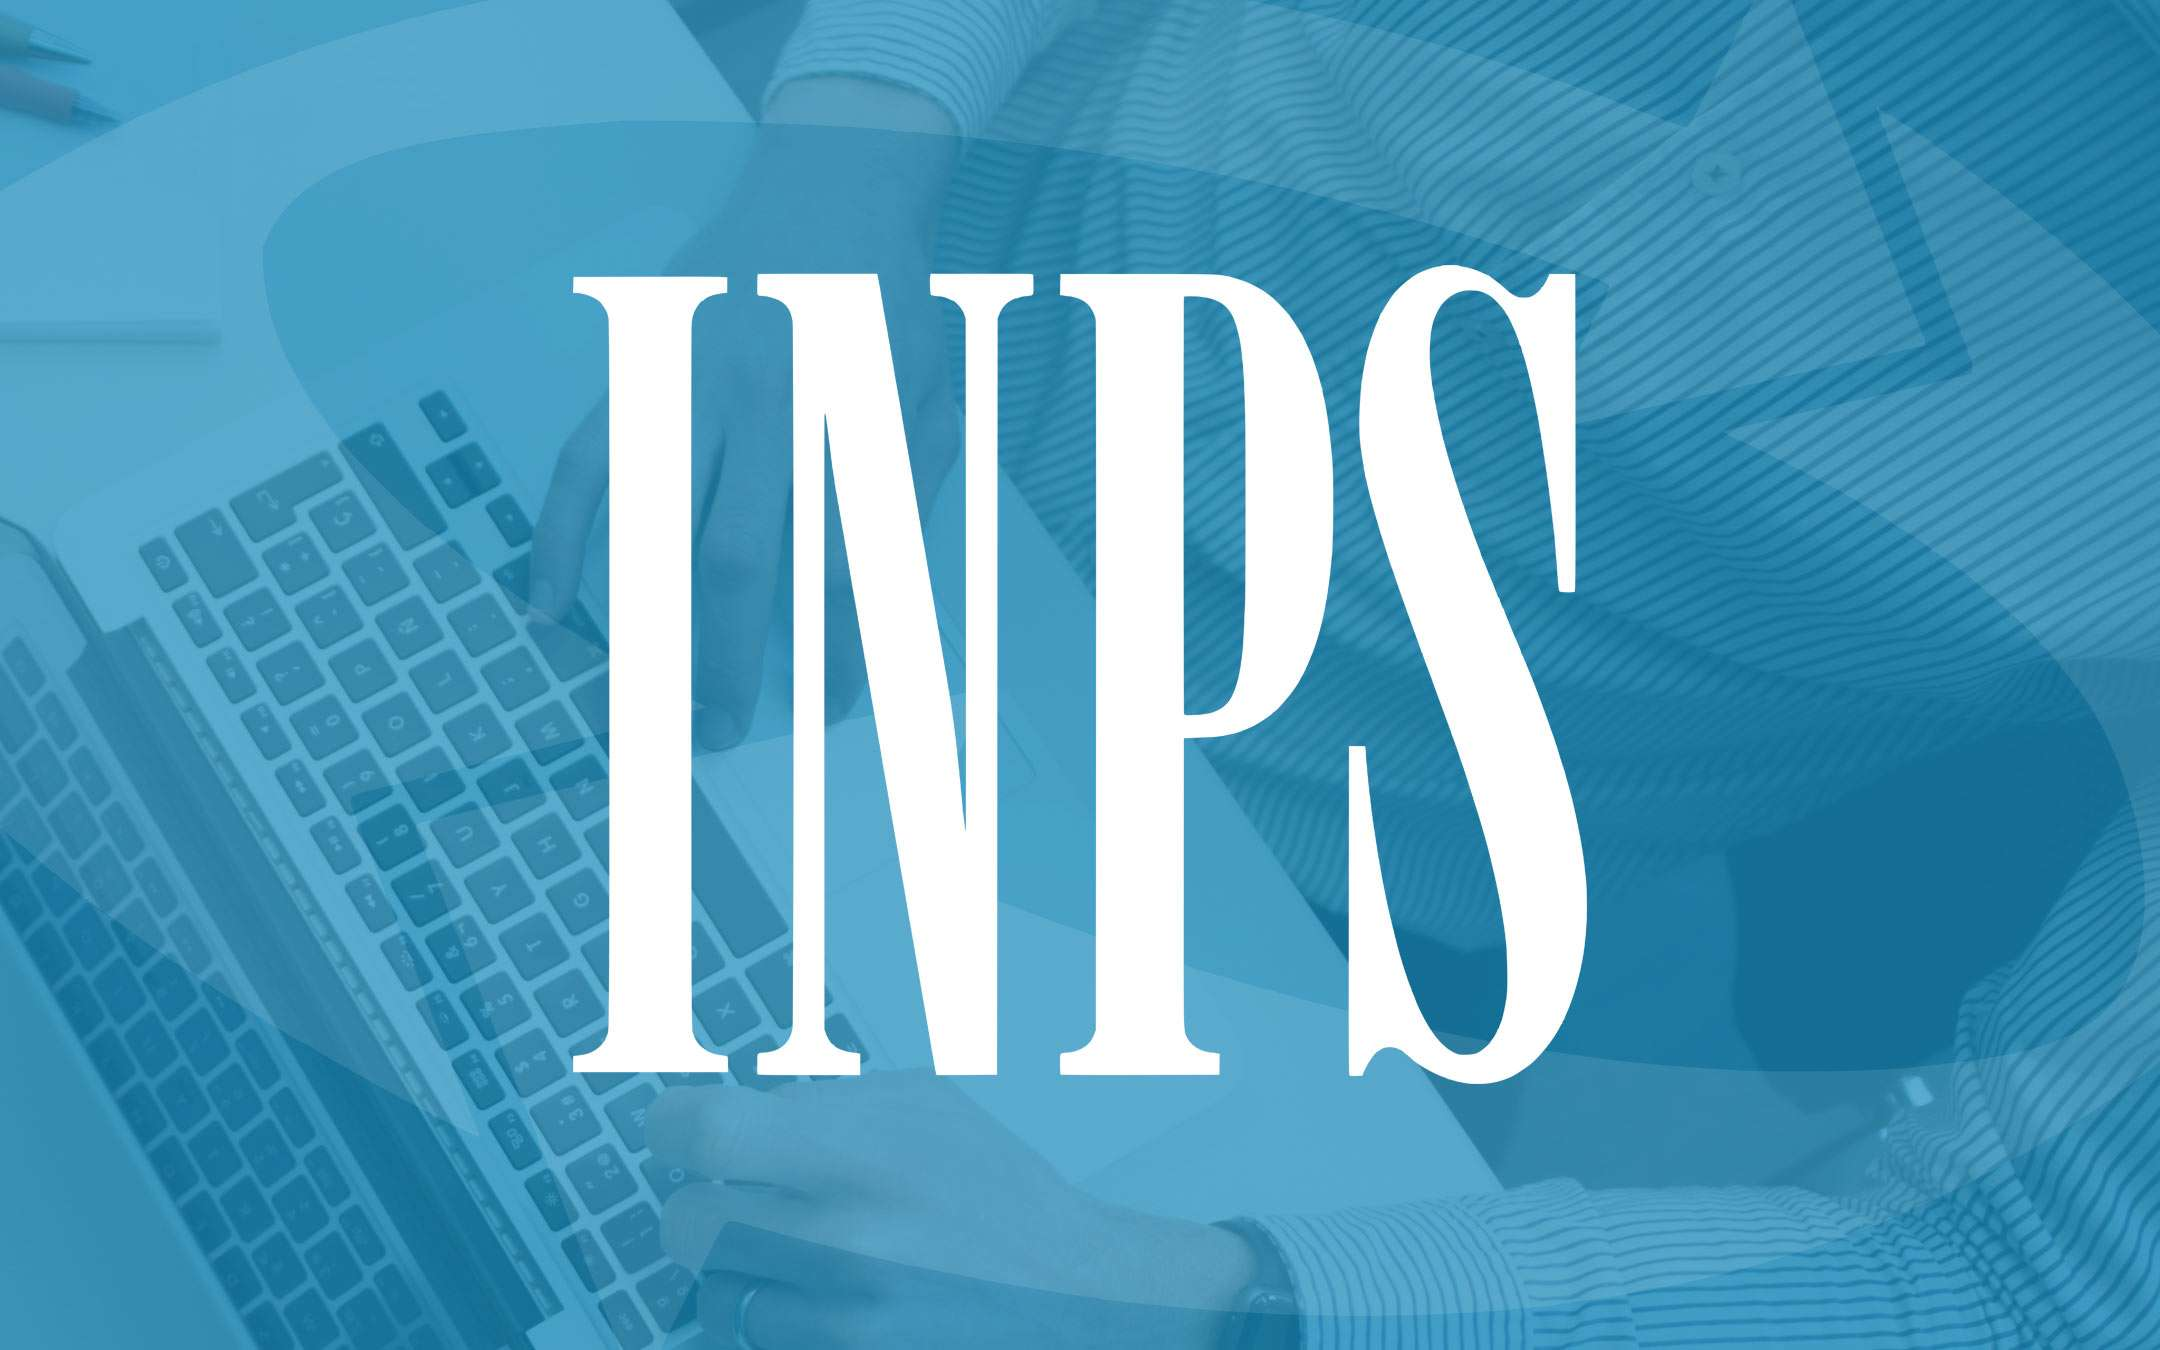 INPS: new assignments for the Technical Structure